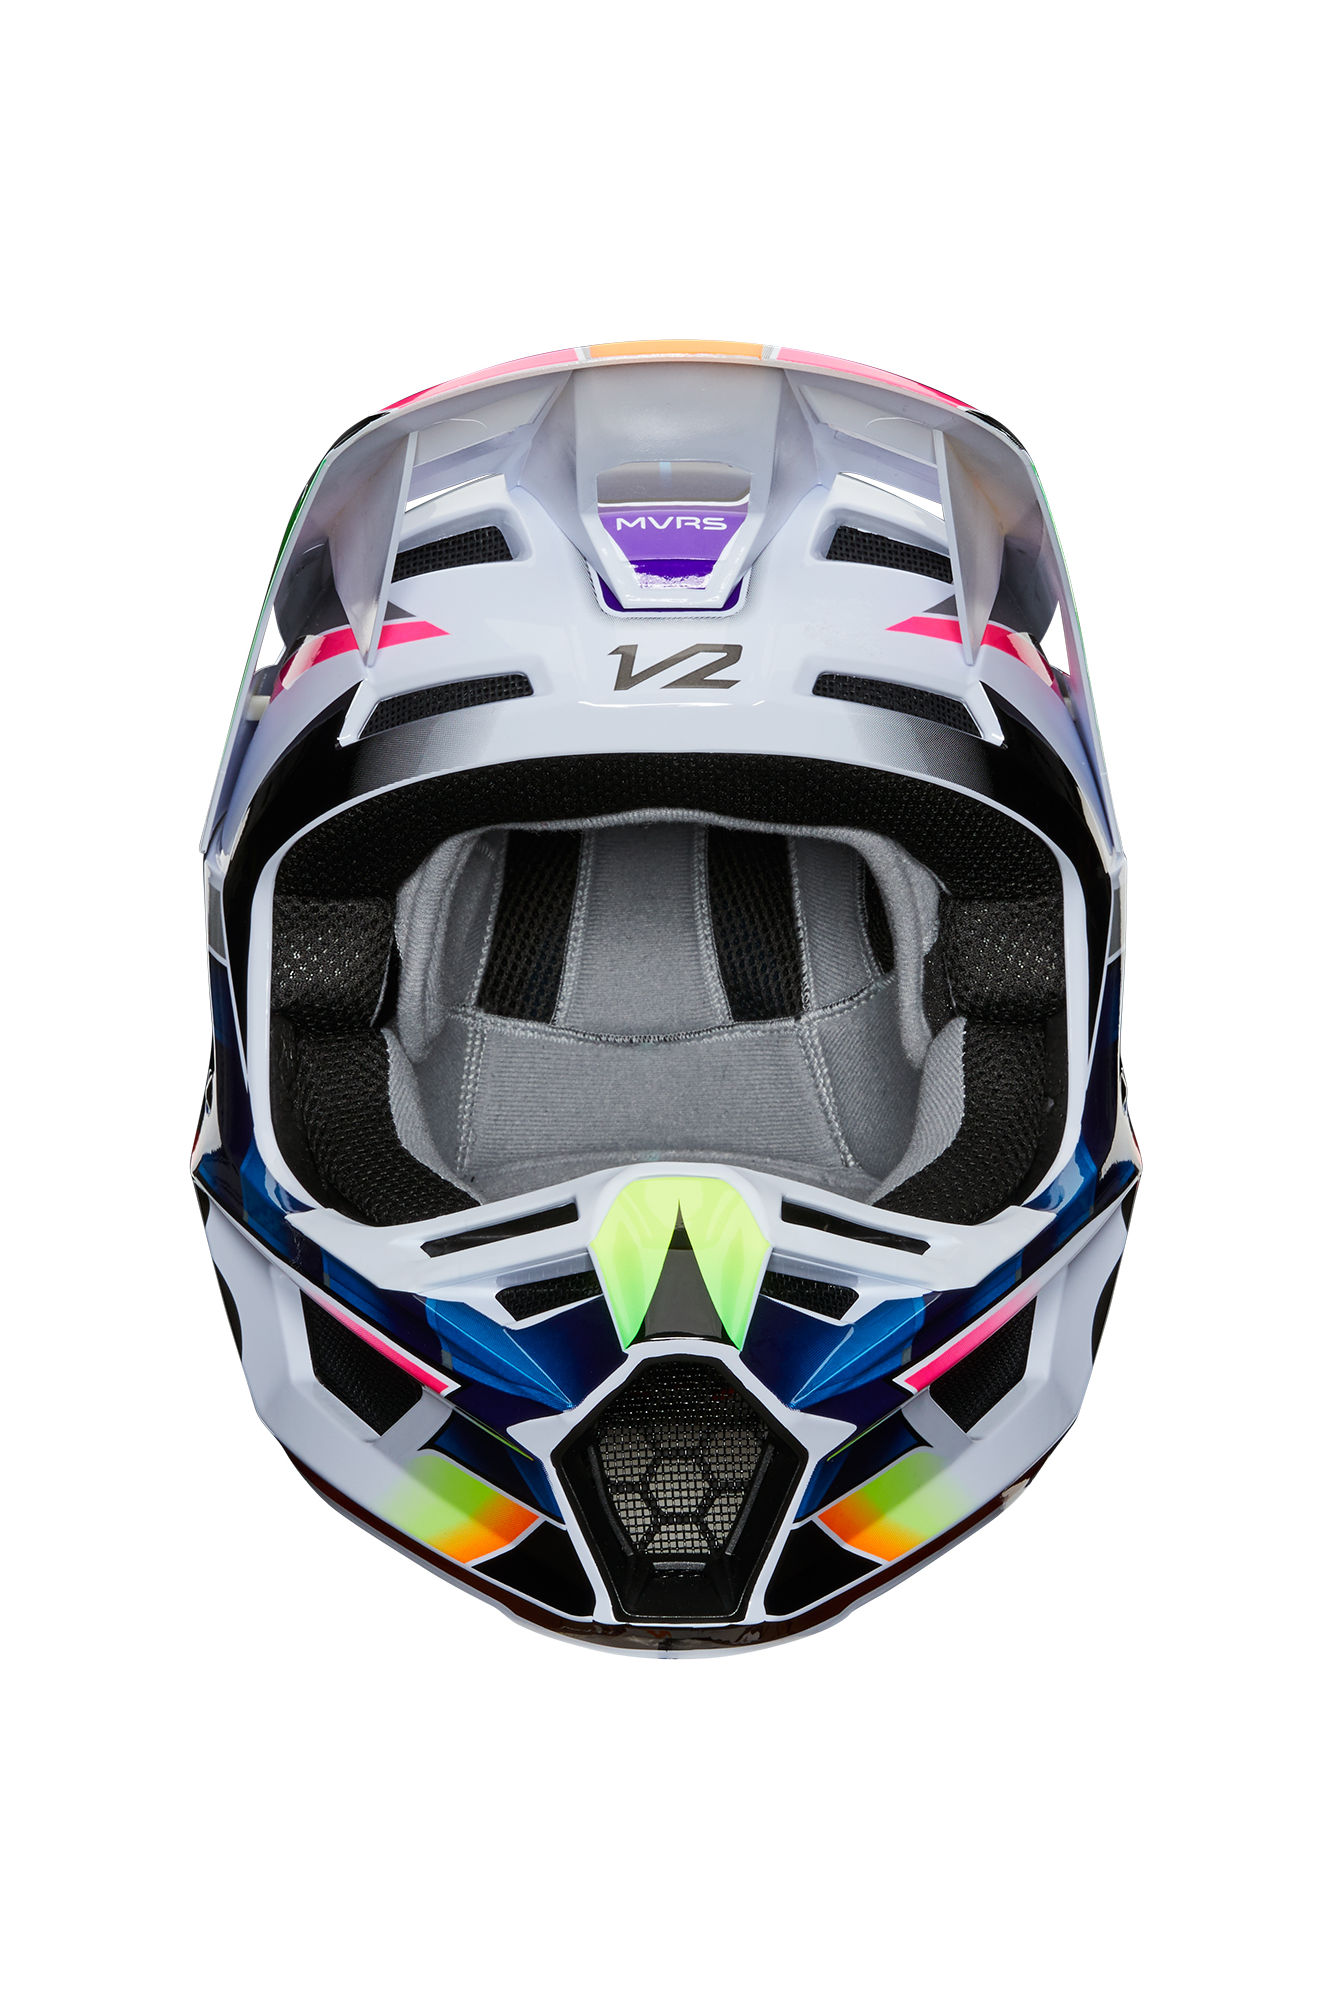 CASCO V2 KRESA n (FOX)